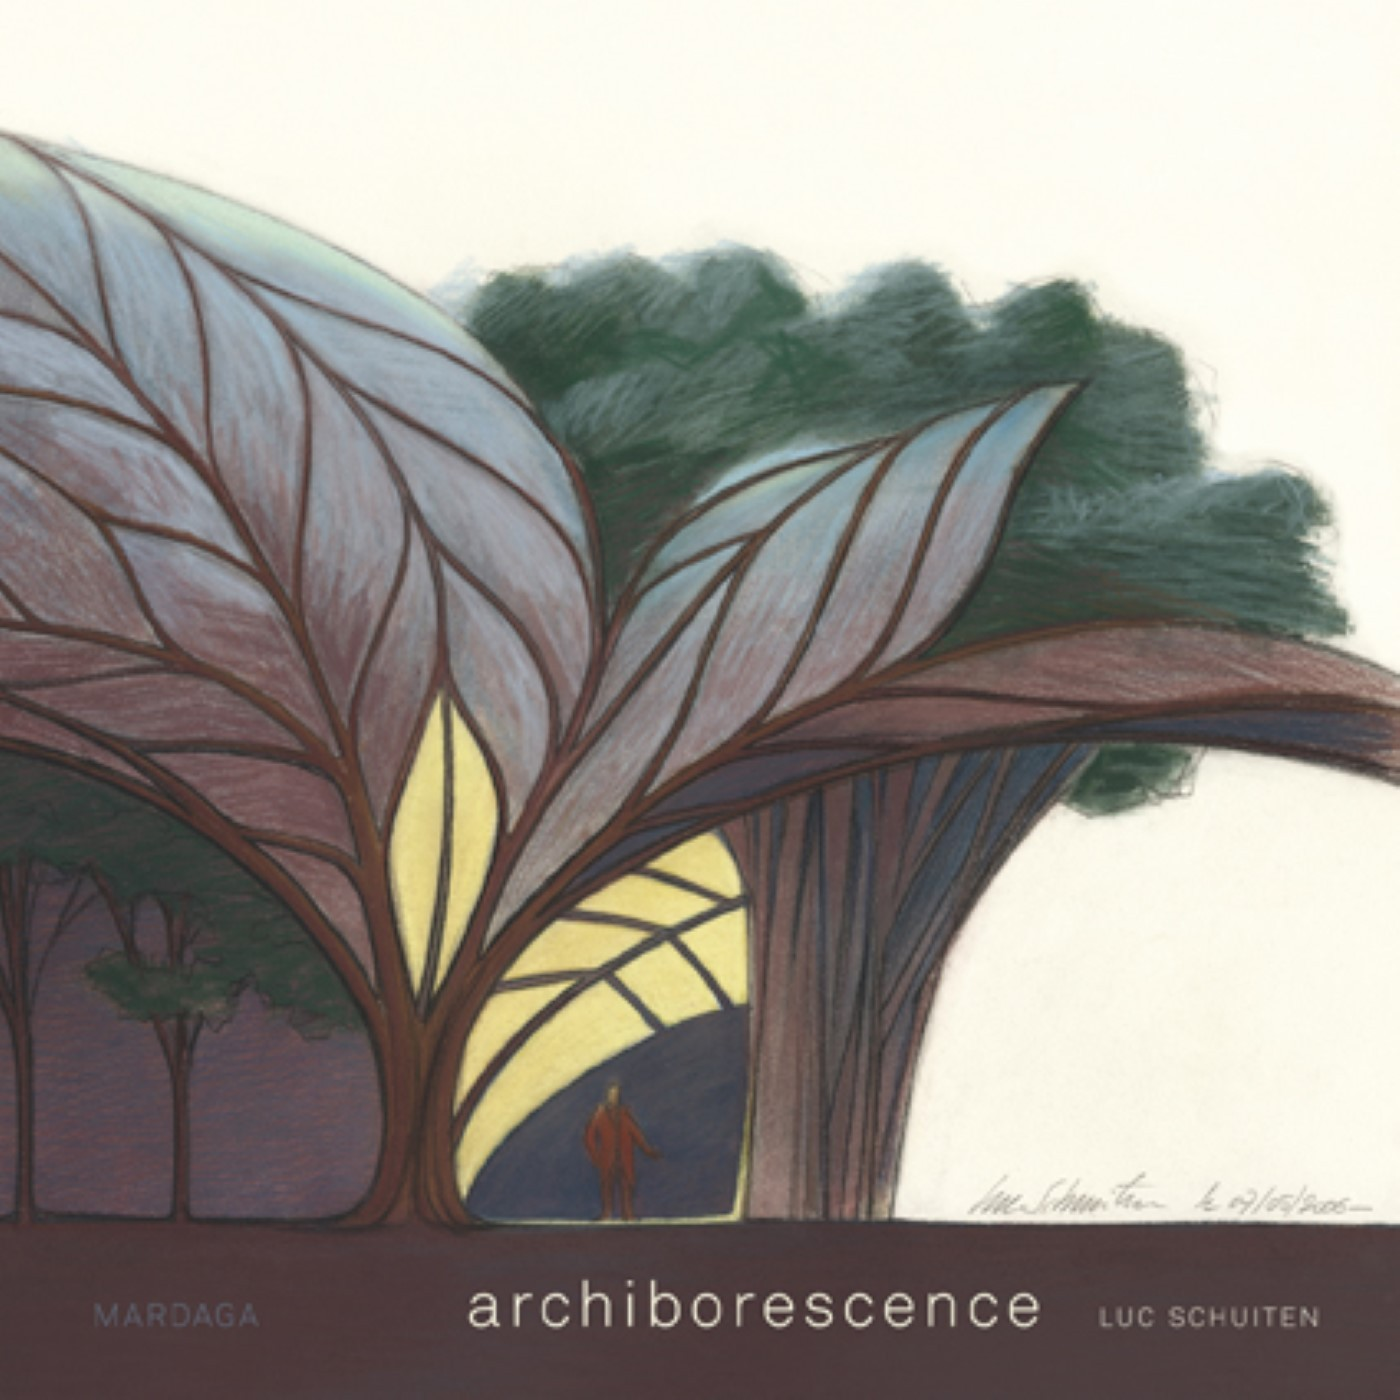 ARCHIBORESCENCE NED BROCHE